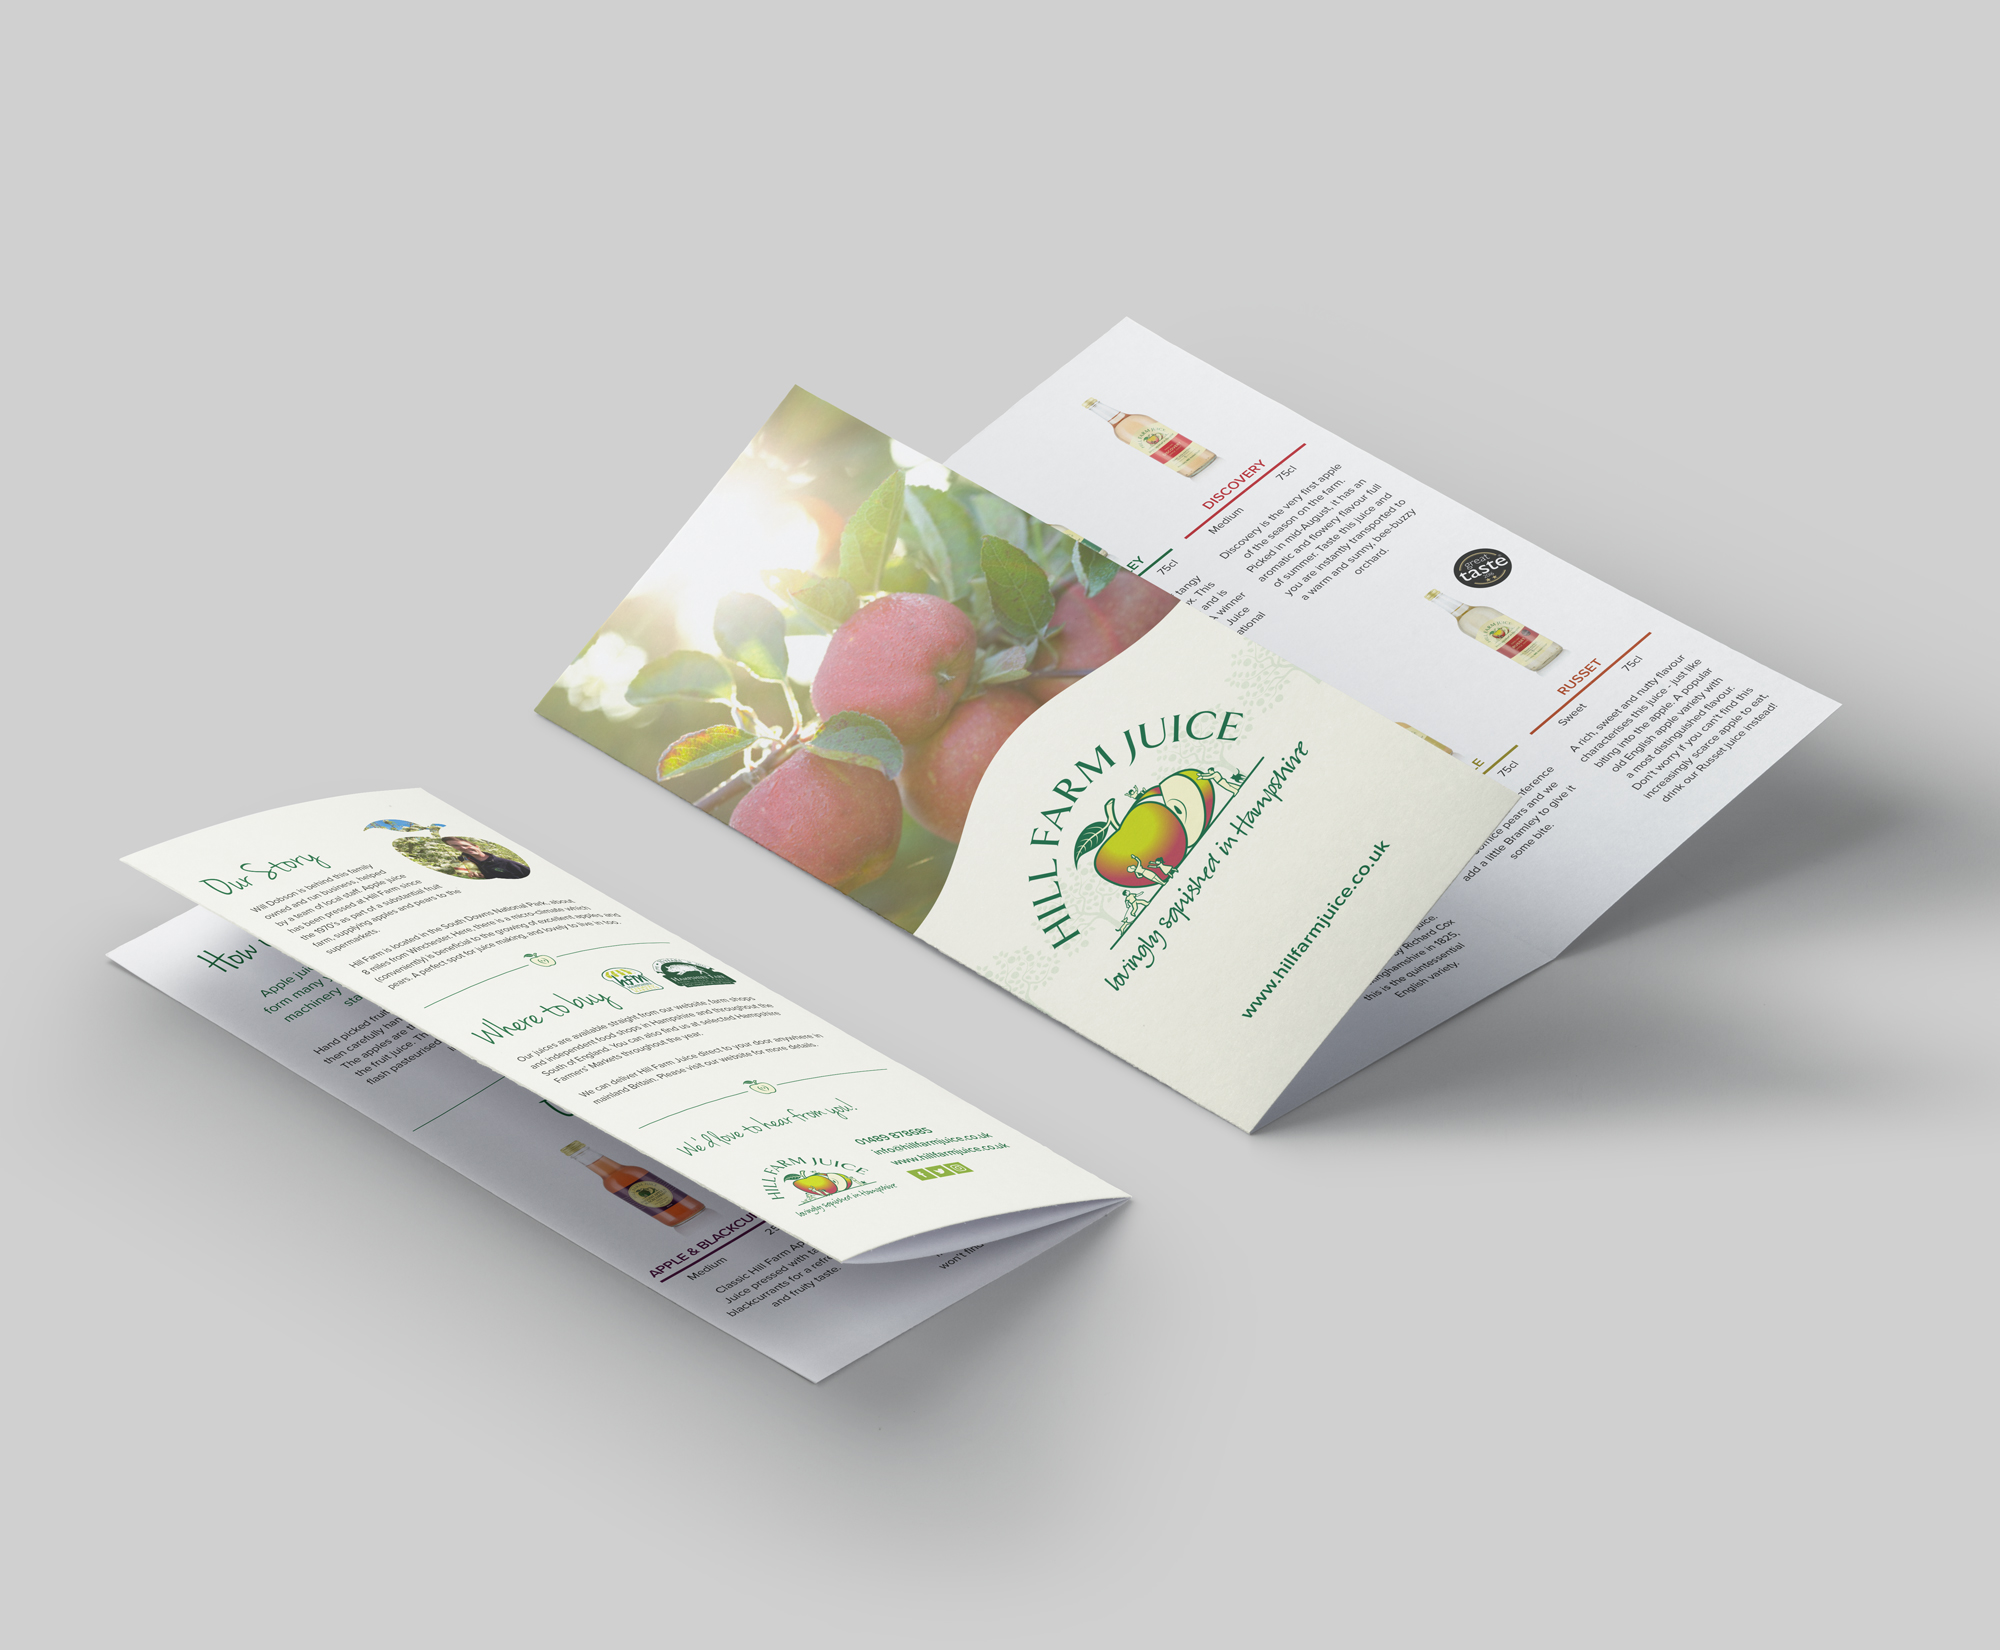 Hill Farm Juice Leaflet Design